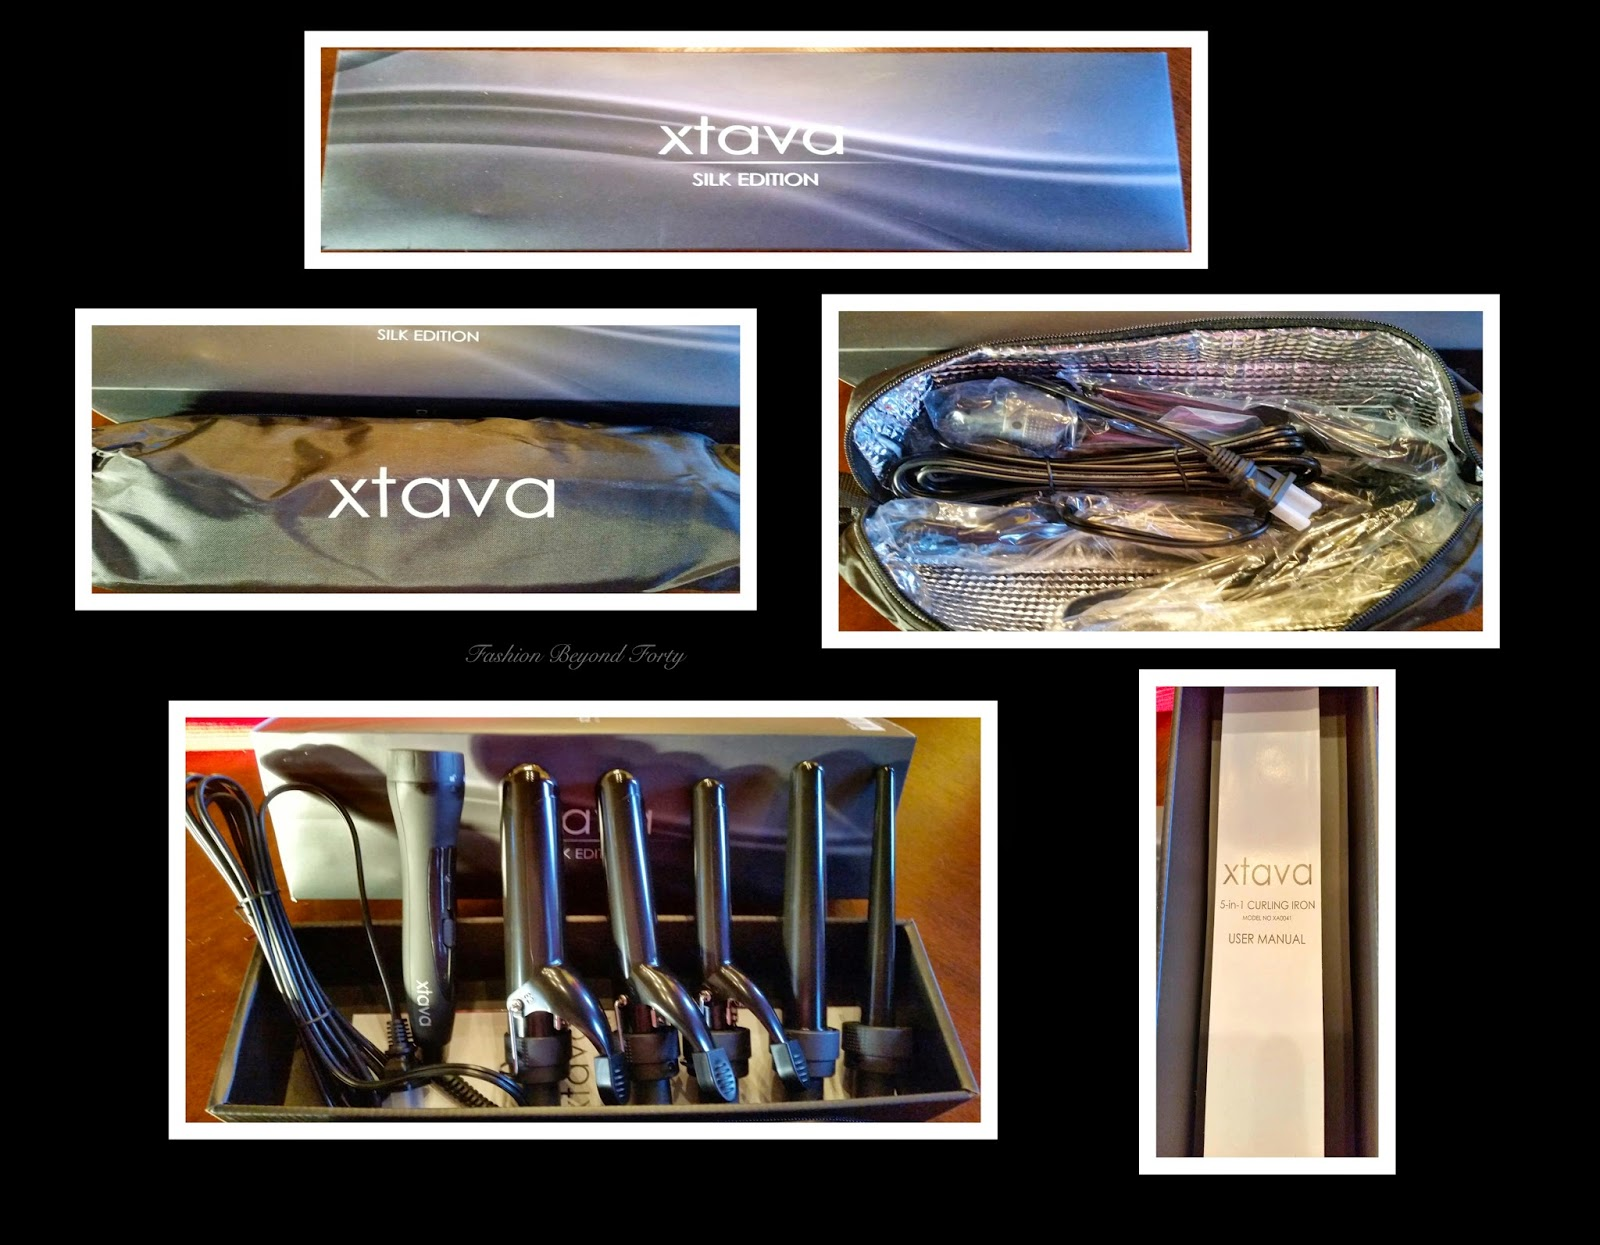 Xtava 5 in 1 Professional Curling Iron